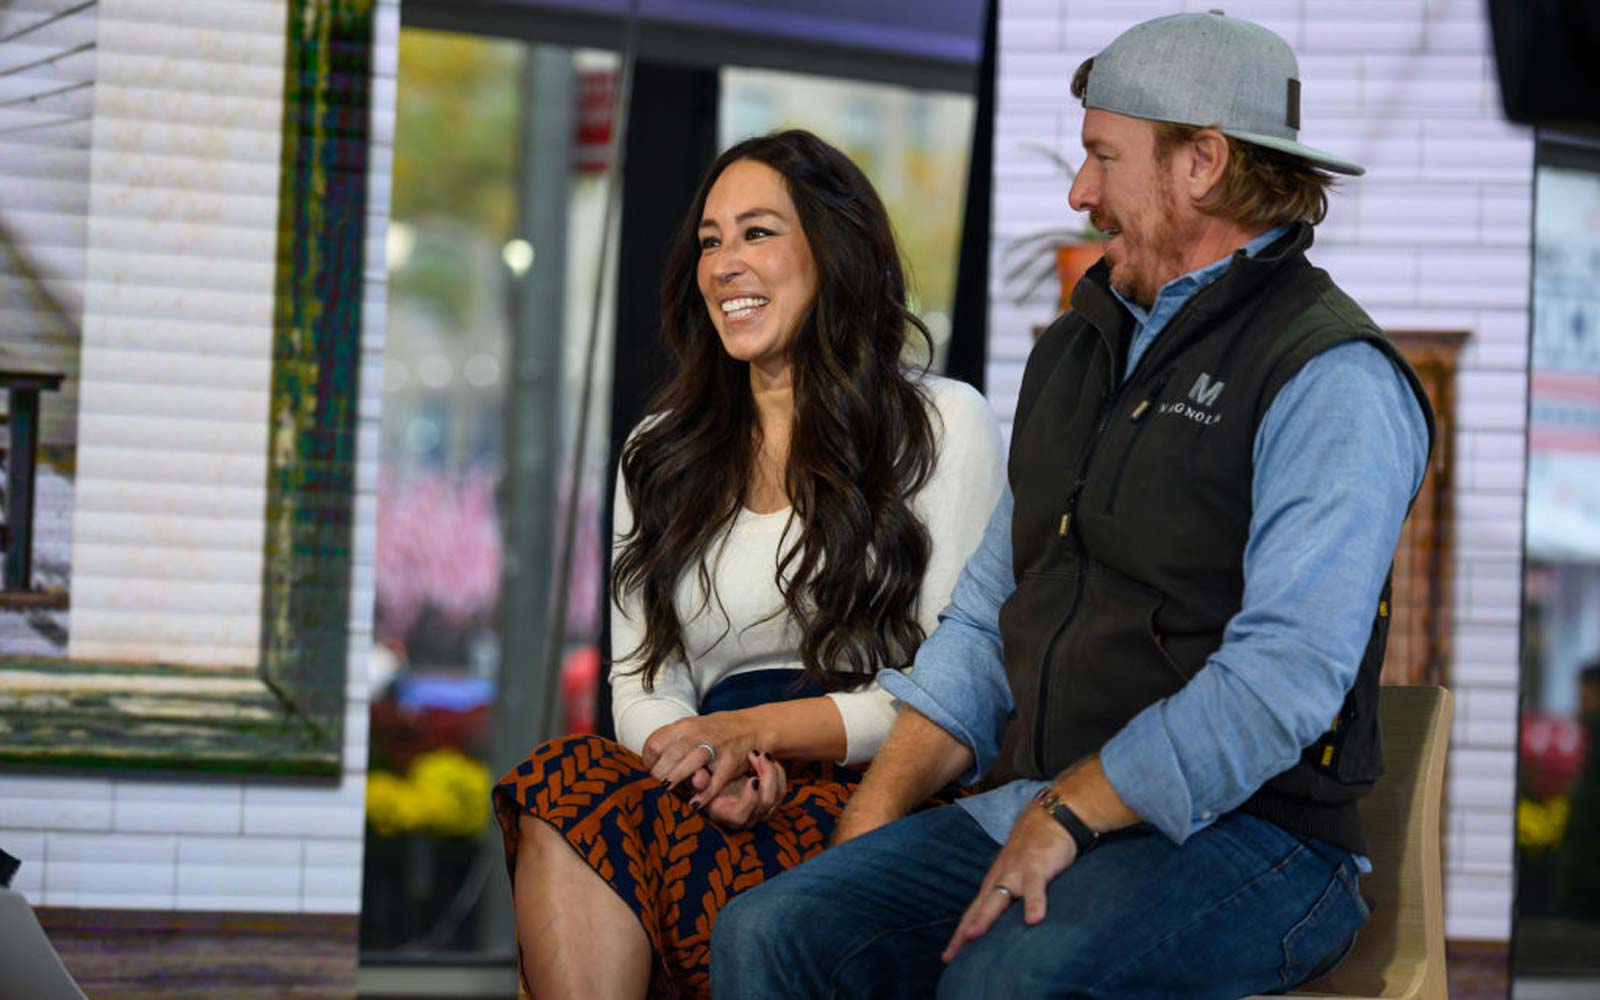 Chip and Joanna Gaines on the Today show